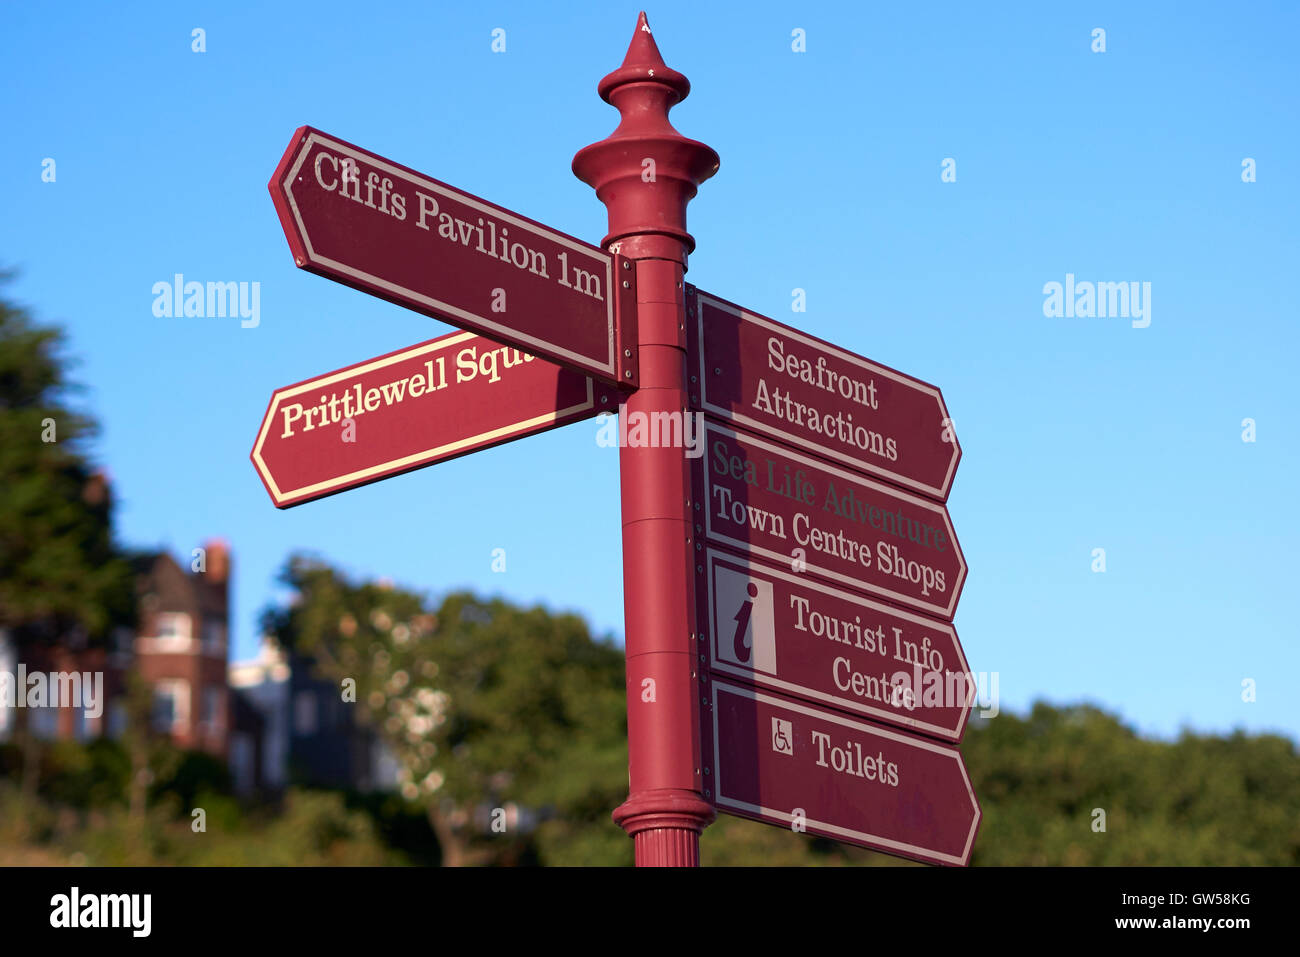 Road sign, Southend On Sea, Essex, UK. End of 2016 Summer - Stock Image